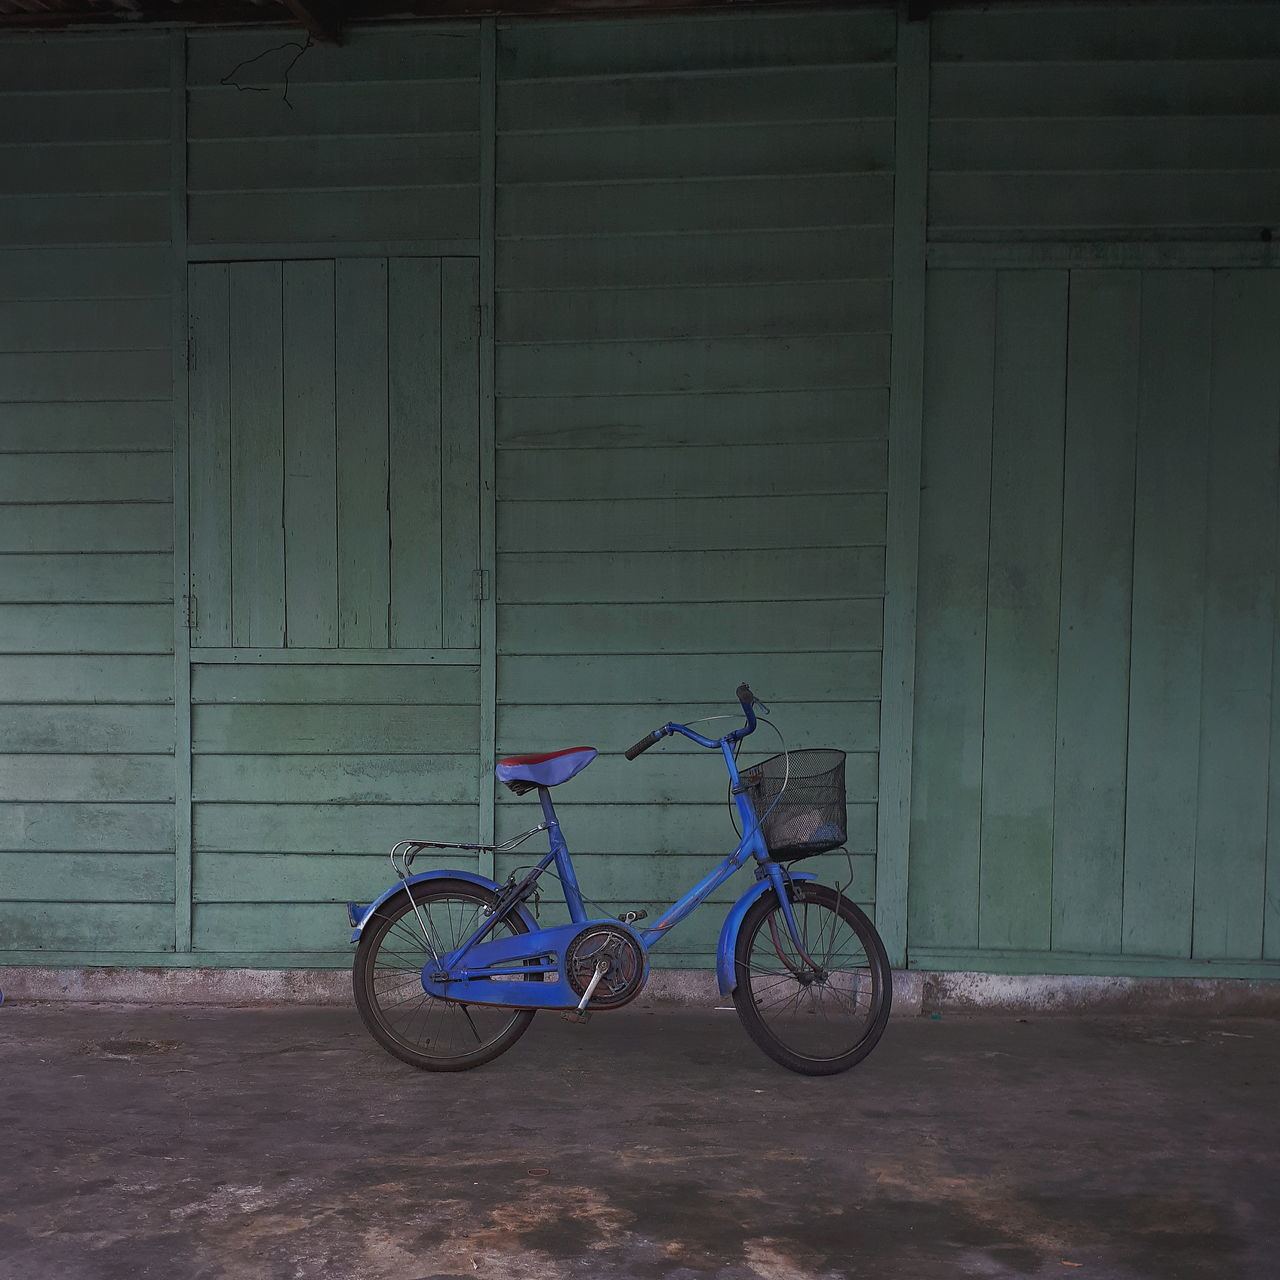 bicycle, transportation, stationary, mode of transport, outdoors, day, built structure, architecture, no people, childhood